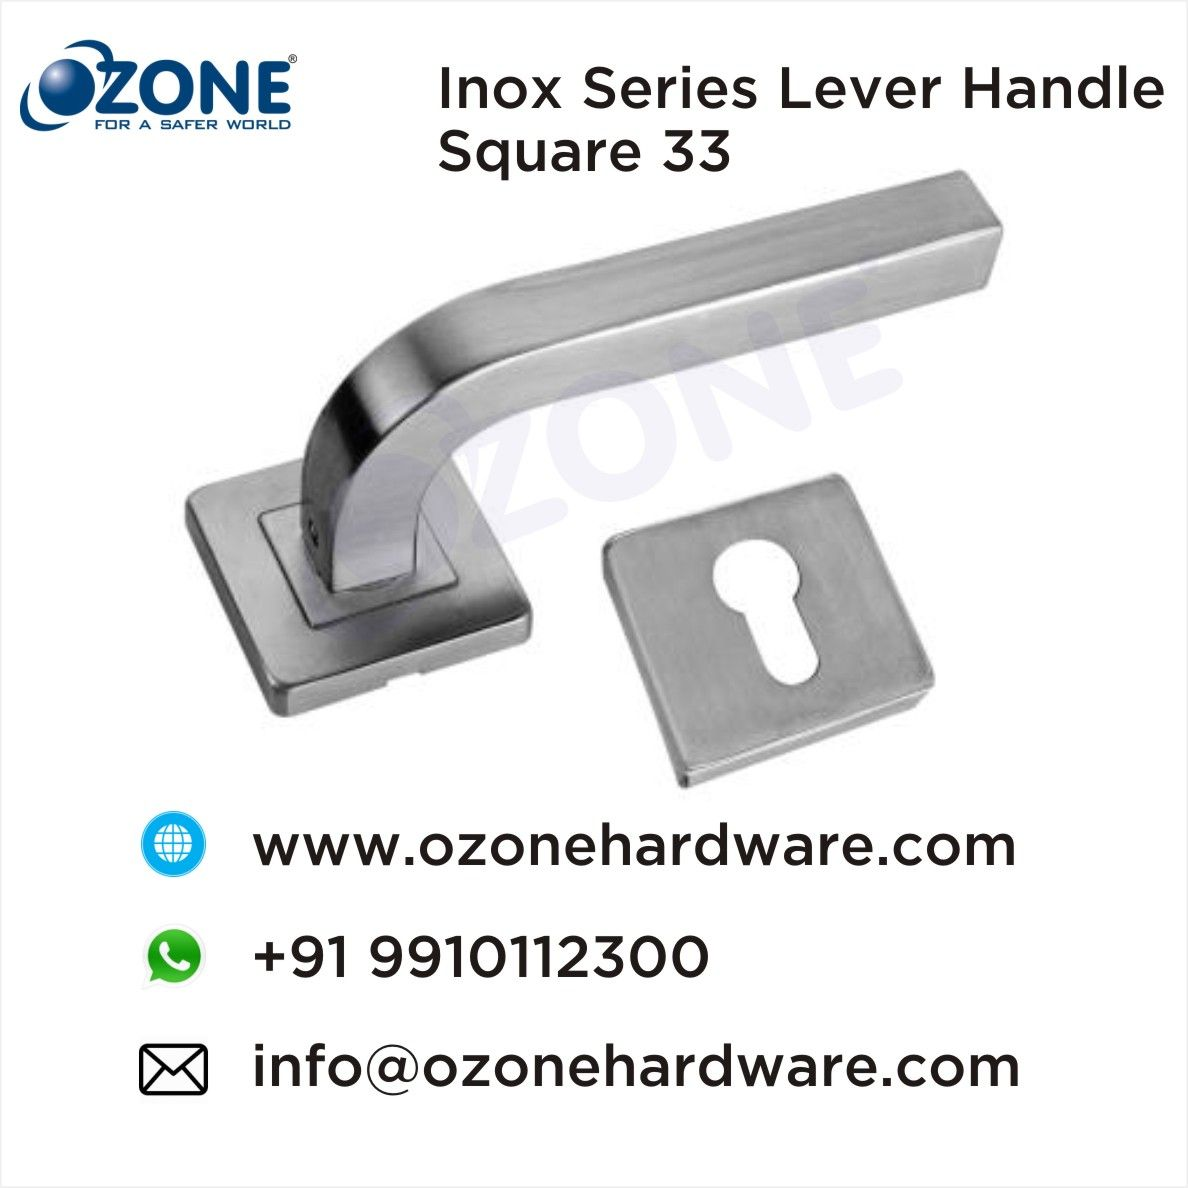 Inox Series Lever Handle Square 33 Door Lever Handles Modern Door Levers Manufacturers Exporters Of Door Handles Door Handles Lever Handle Metal Door